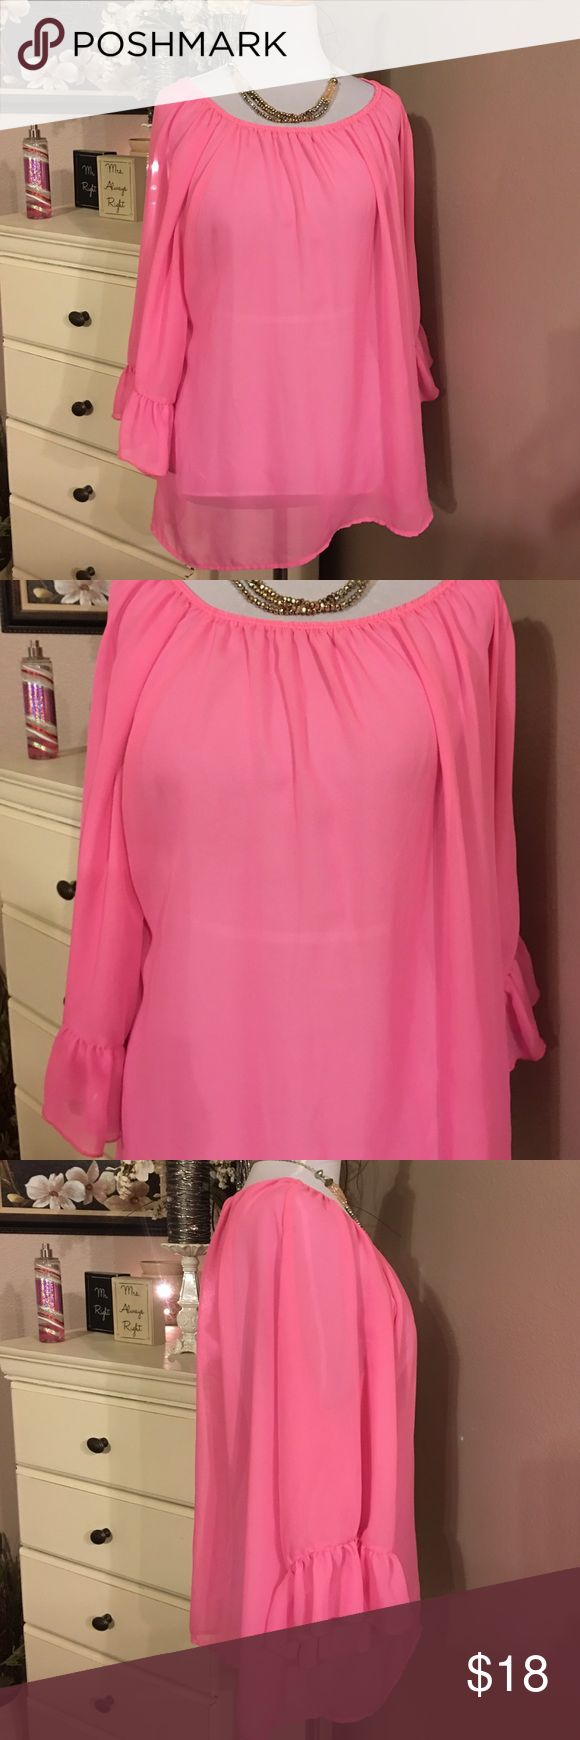 Giddy up Glamour Sheer Top Pink Giddy up Glamour sheer top. Very pretty. Soft flowing fabric. Like new condition size XL pre-owned. Worn once. giddy up glamour Tops Blouses